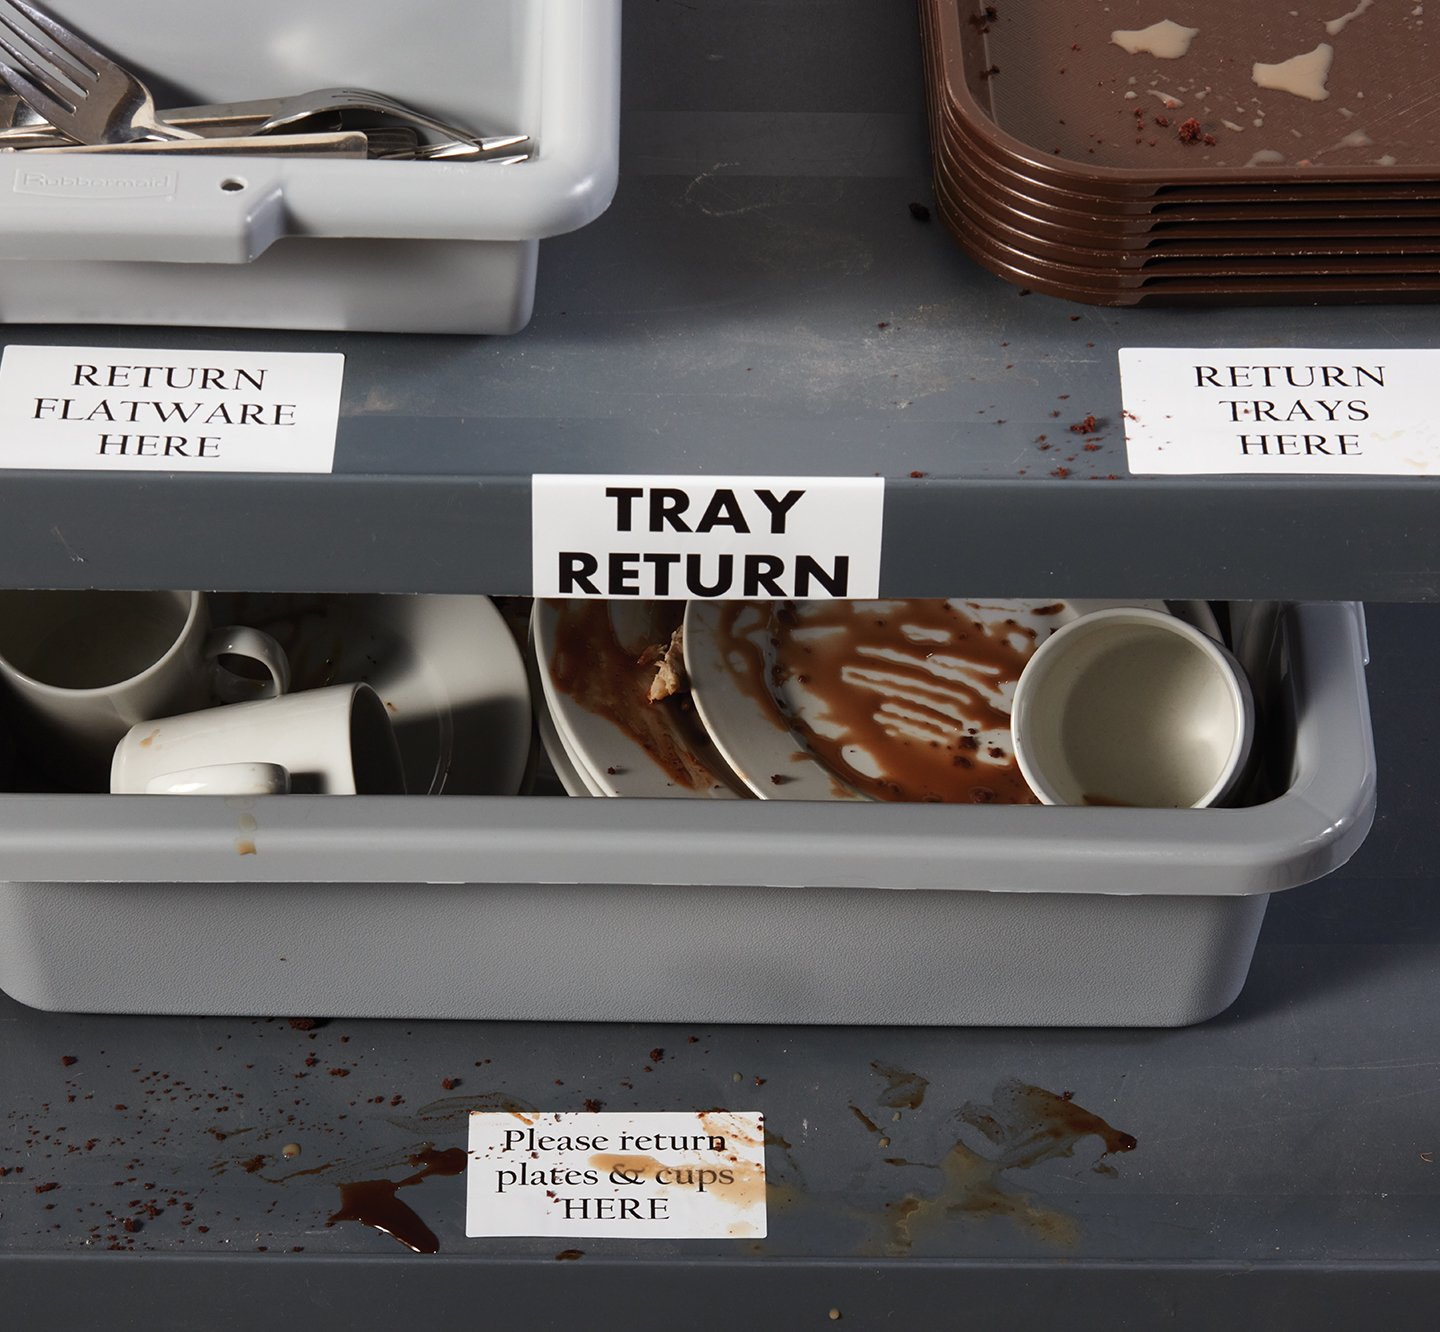 Soiled labels at a restaurant tray return area.